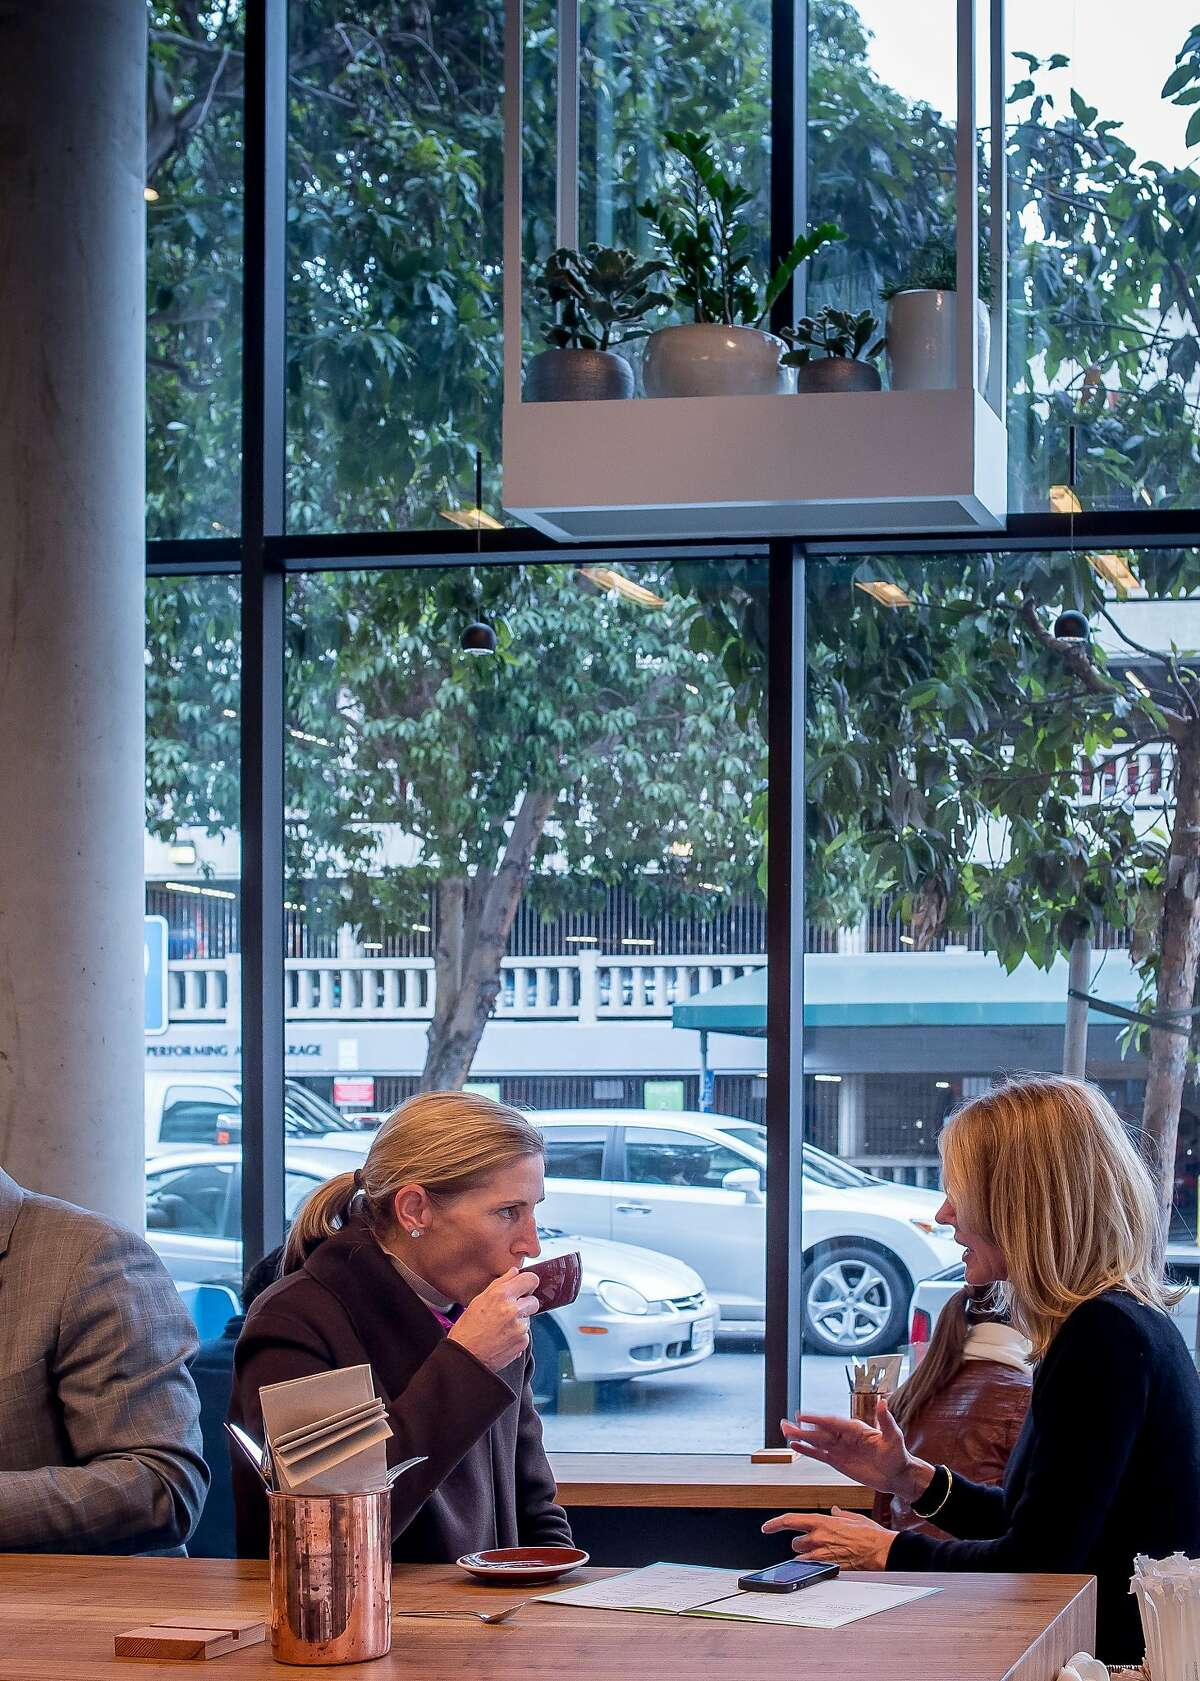 People have lunch at Little Gem in San Francisco, Calif. on January 28th, 2016.